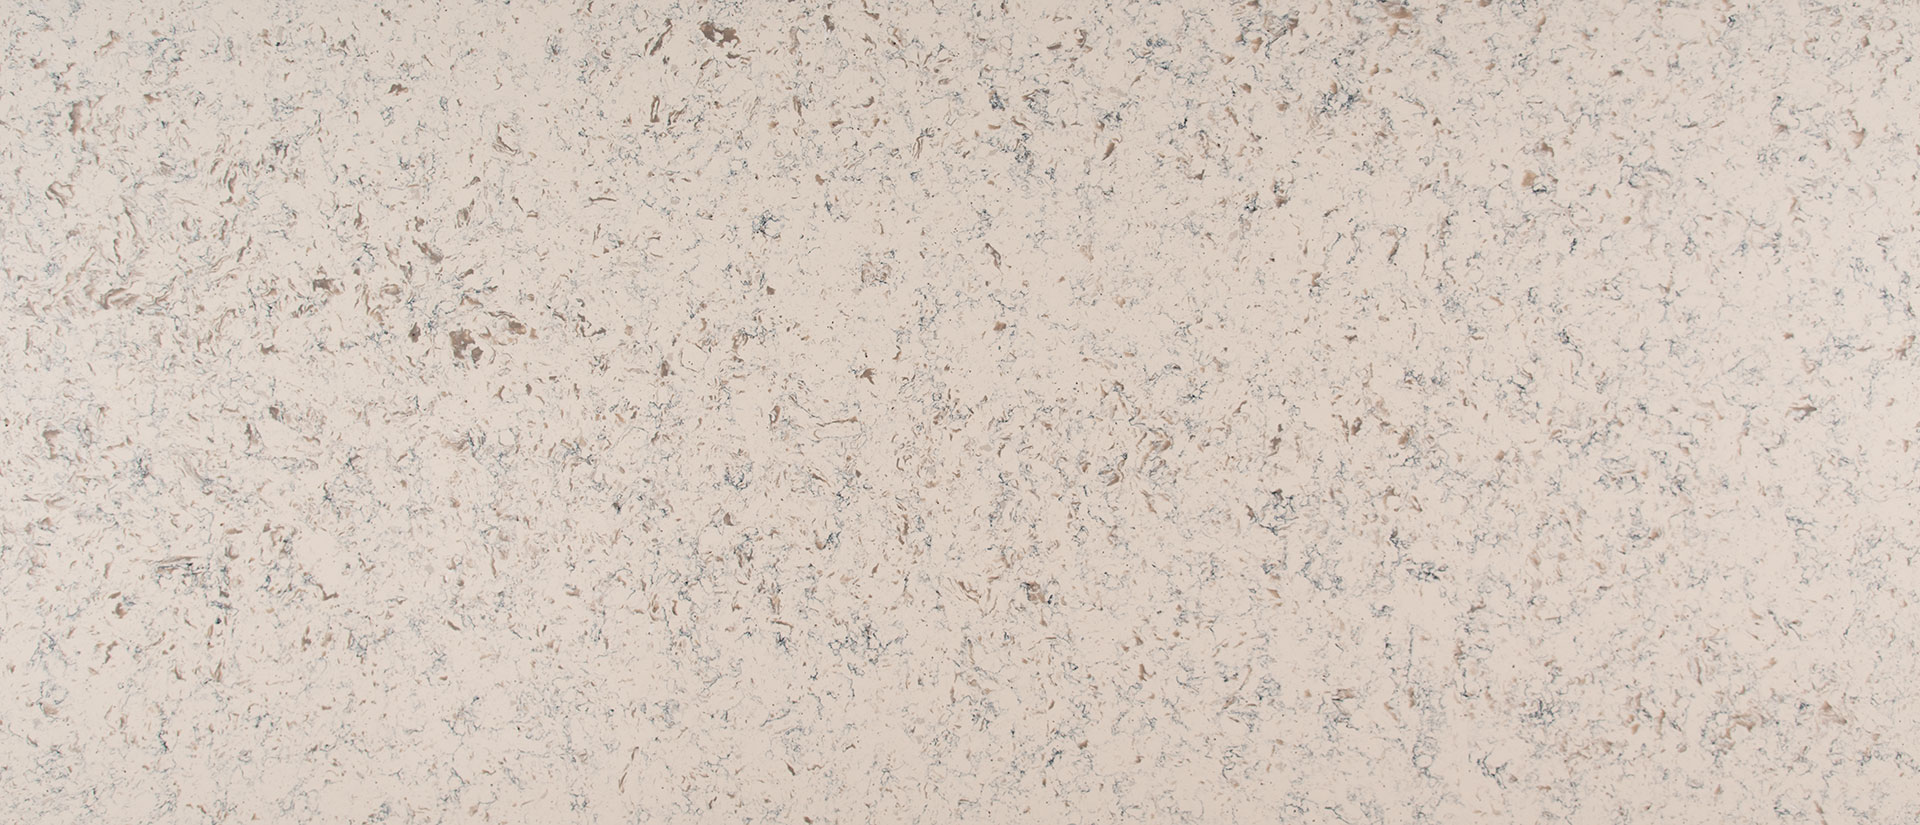 Romano White Quartz Countertops Q Premium Natural Quartz